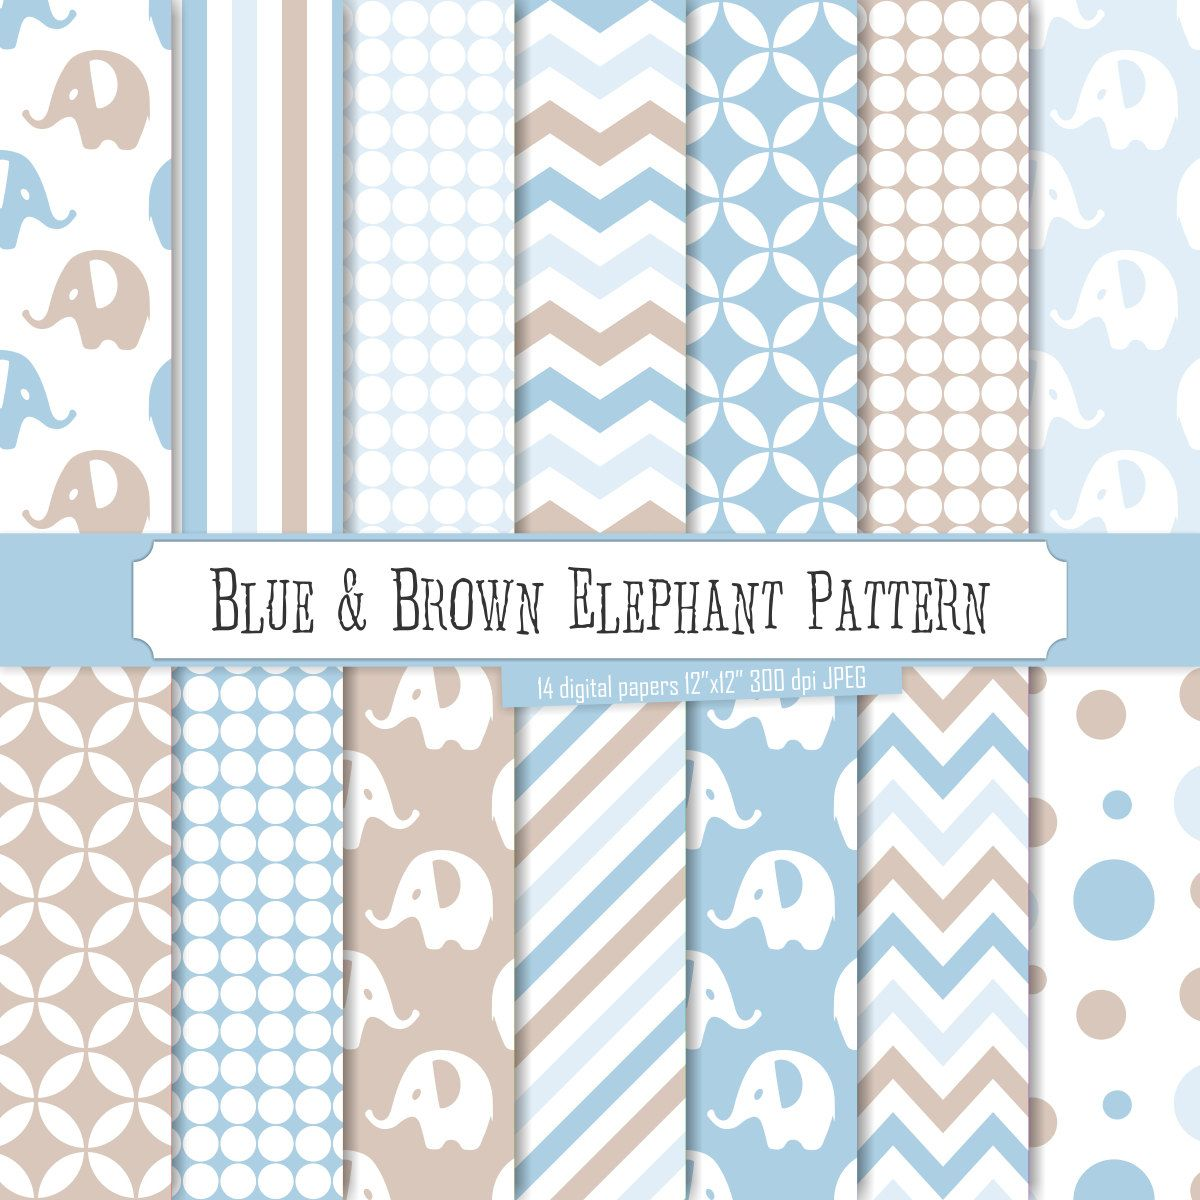 Buy 2 Get 1 Free Digital Paper Blue Brown Elephant Pattern Light Blue White Stripes Polka Dots Lines Chevron For Invite Seamless With Images Digital Paper